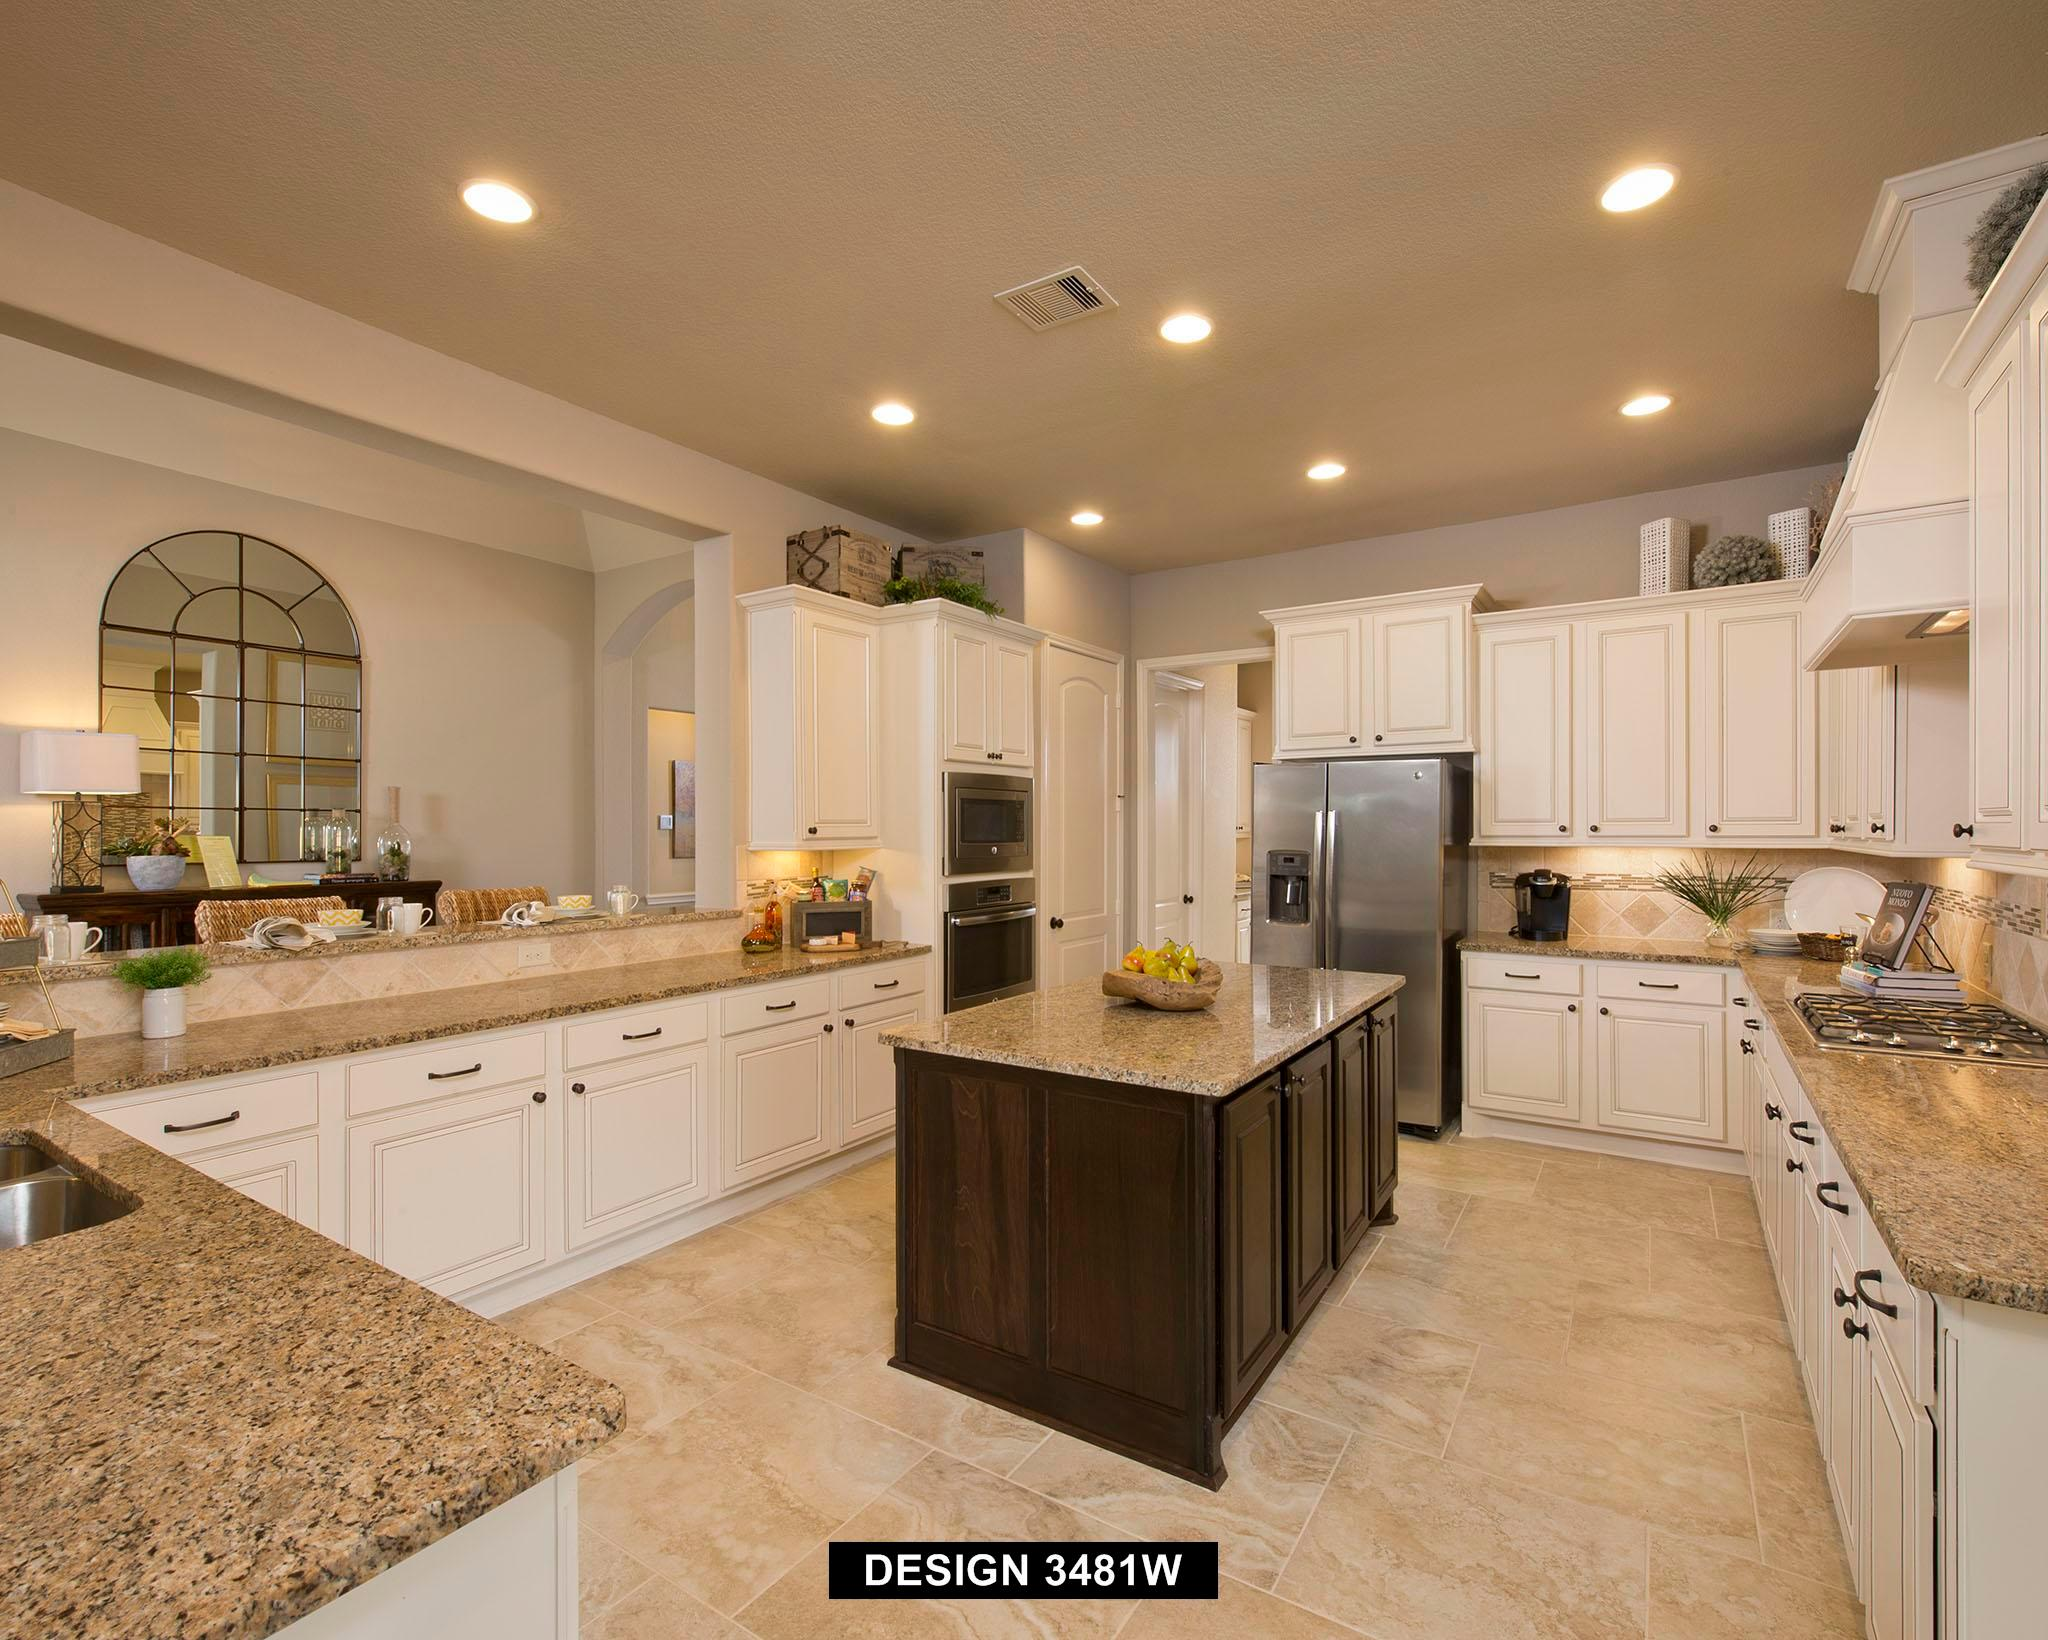 Kitchen featured in the 3481W By Perry Homes in Houston, TX